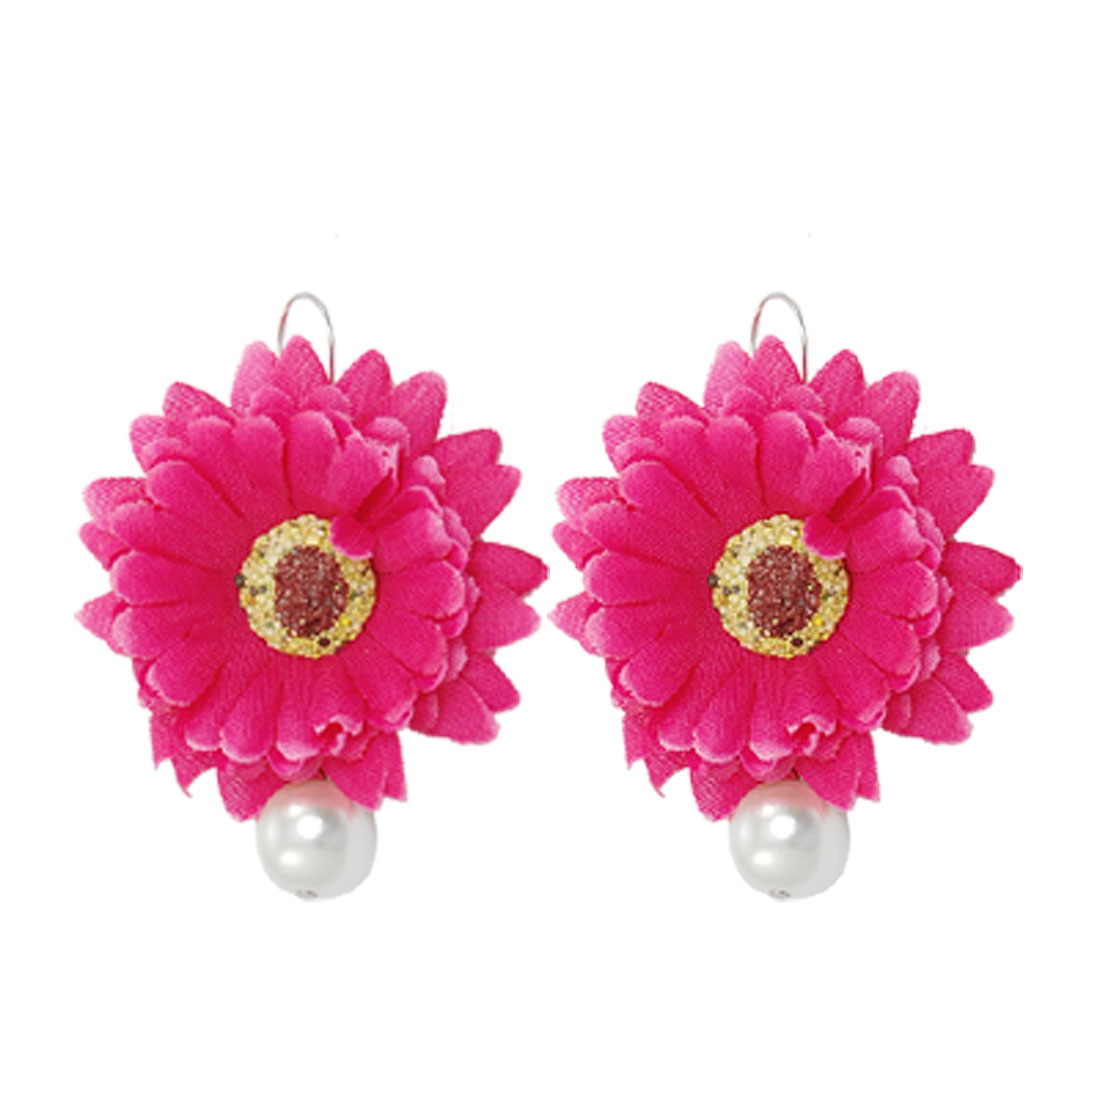 Pair Hot Pink Sunflower White Plastic Imitation Pearl Pendant Hook Earrings